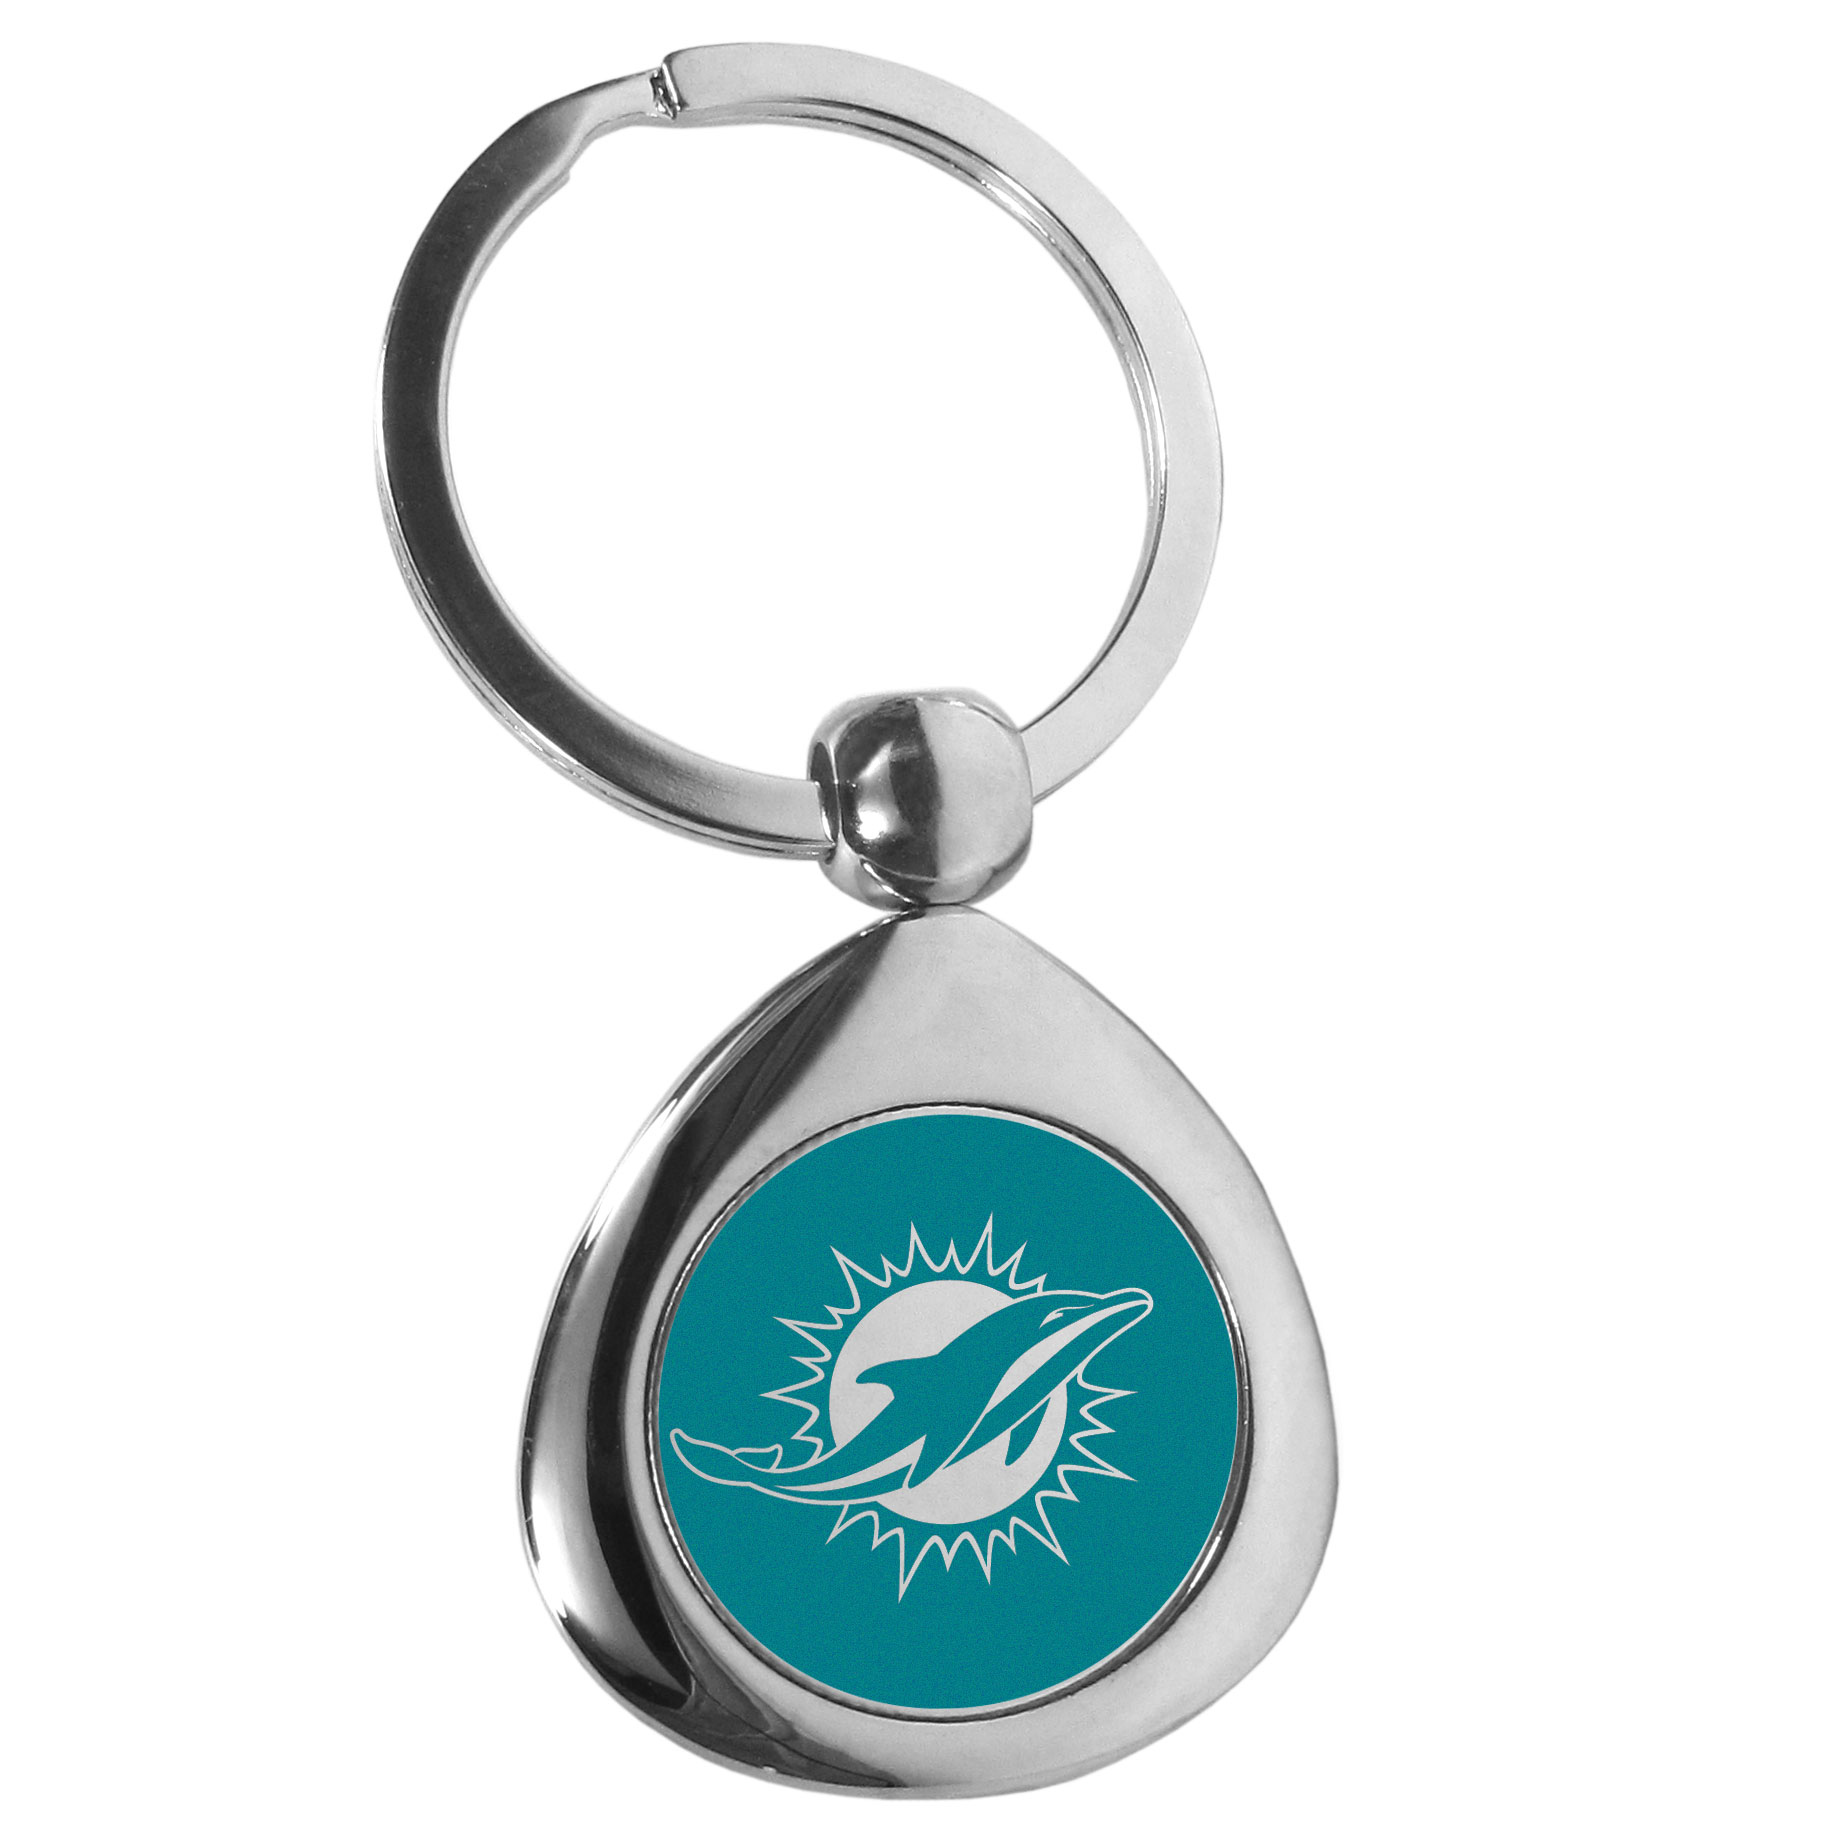 Miami Dolphins Round Teardrop Key Chain - Our high polish chrome Miami Dolphins round teardrop key chain has a classy look with a sporty twist. The high-quality key fob features the team logo in the team's primary color. The key ring is a flat split ring that is easier to load you home and auto keys onto.